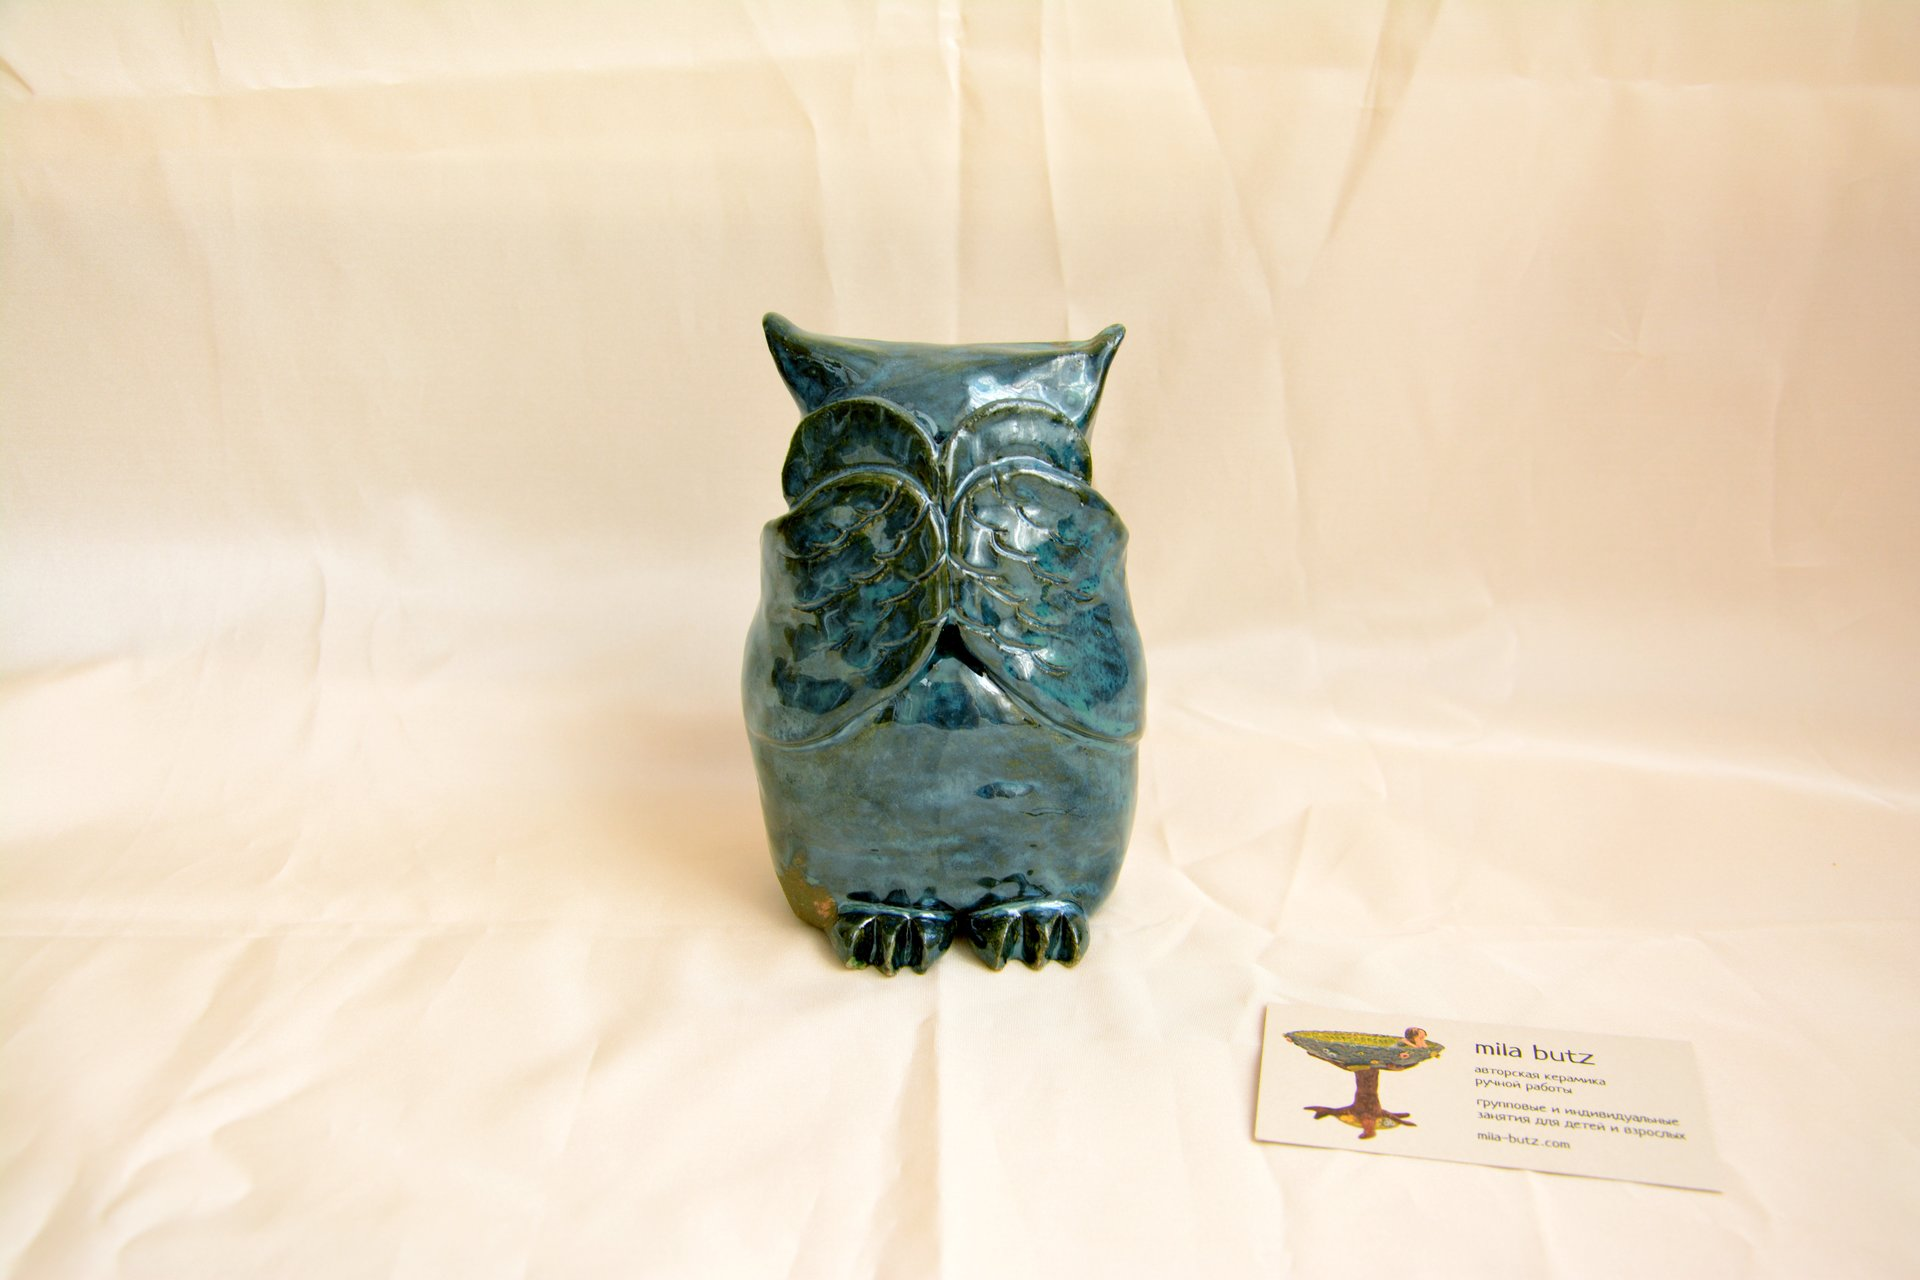 Owl «I see nothing» - Animals and birds, height - 14 cm, photo 1 of 3.